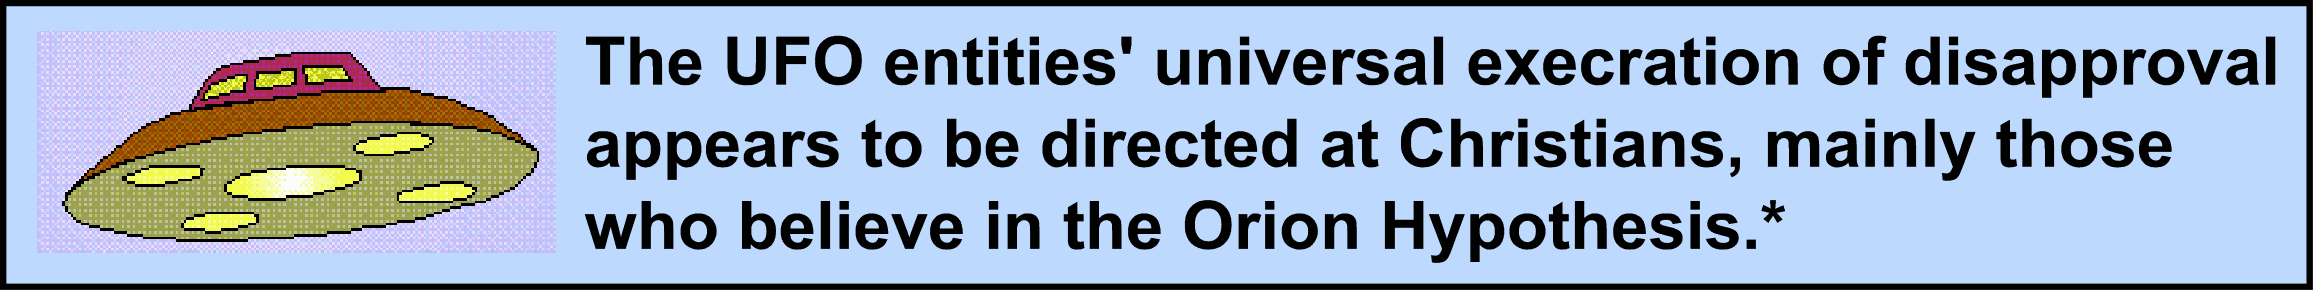 Image:So the UFO entities' universal execration of disapproval appears to be directed at Christians, mainly those who believe in the Orion Hypothesis.*